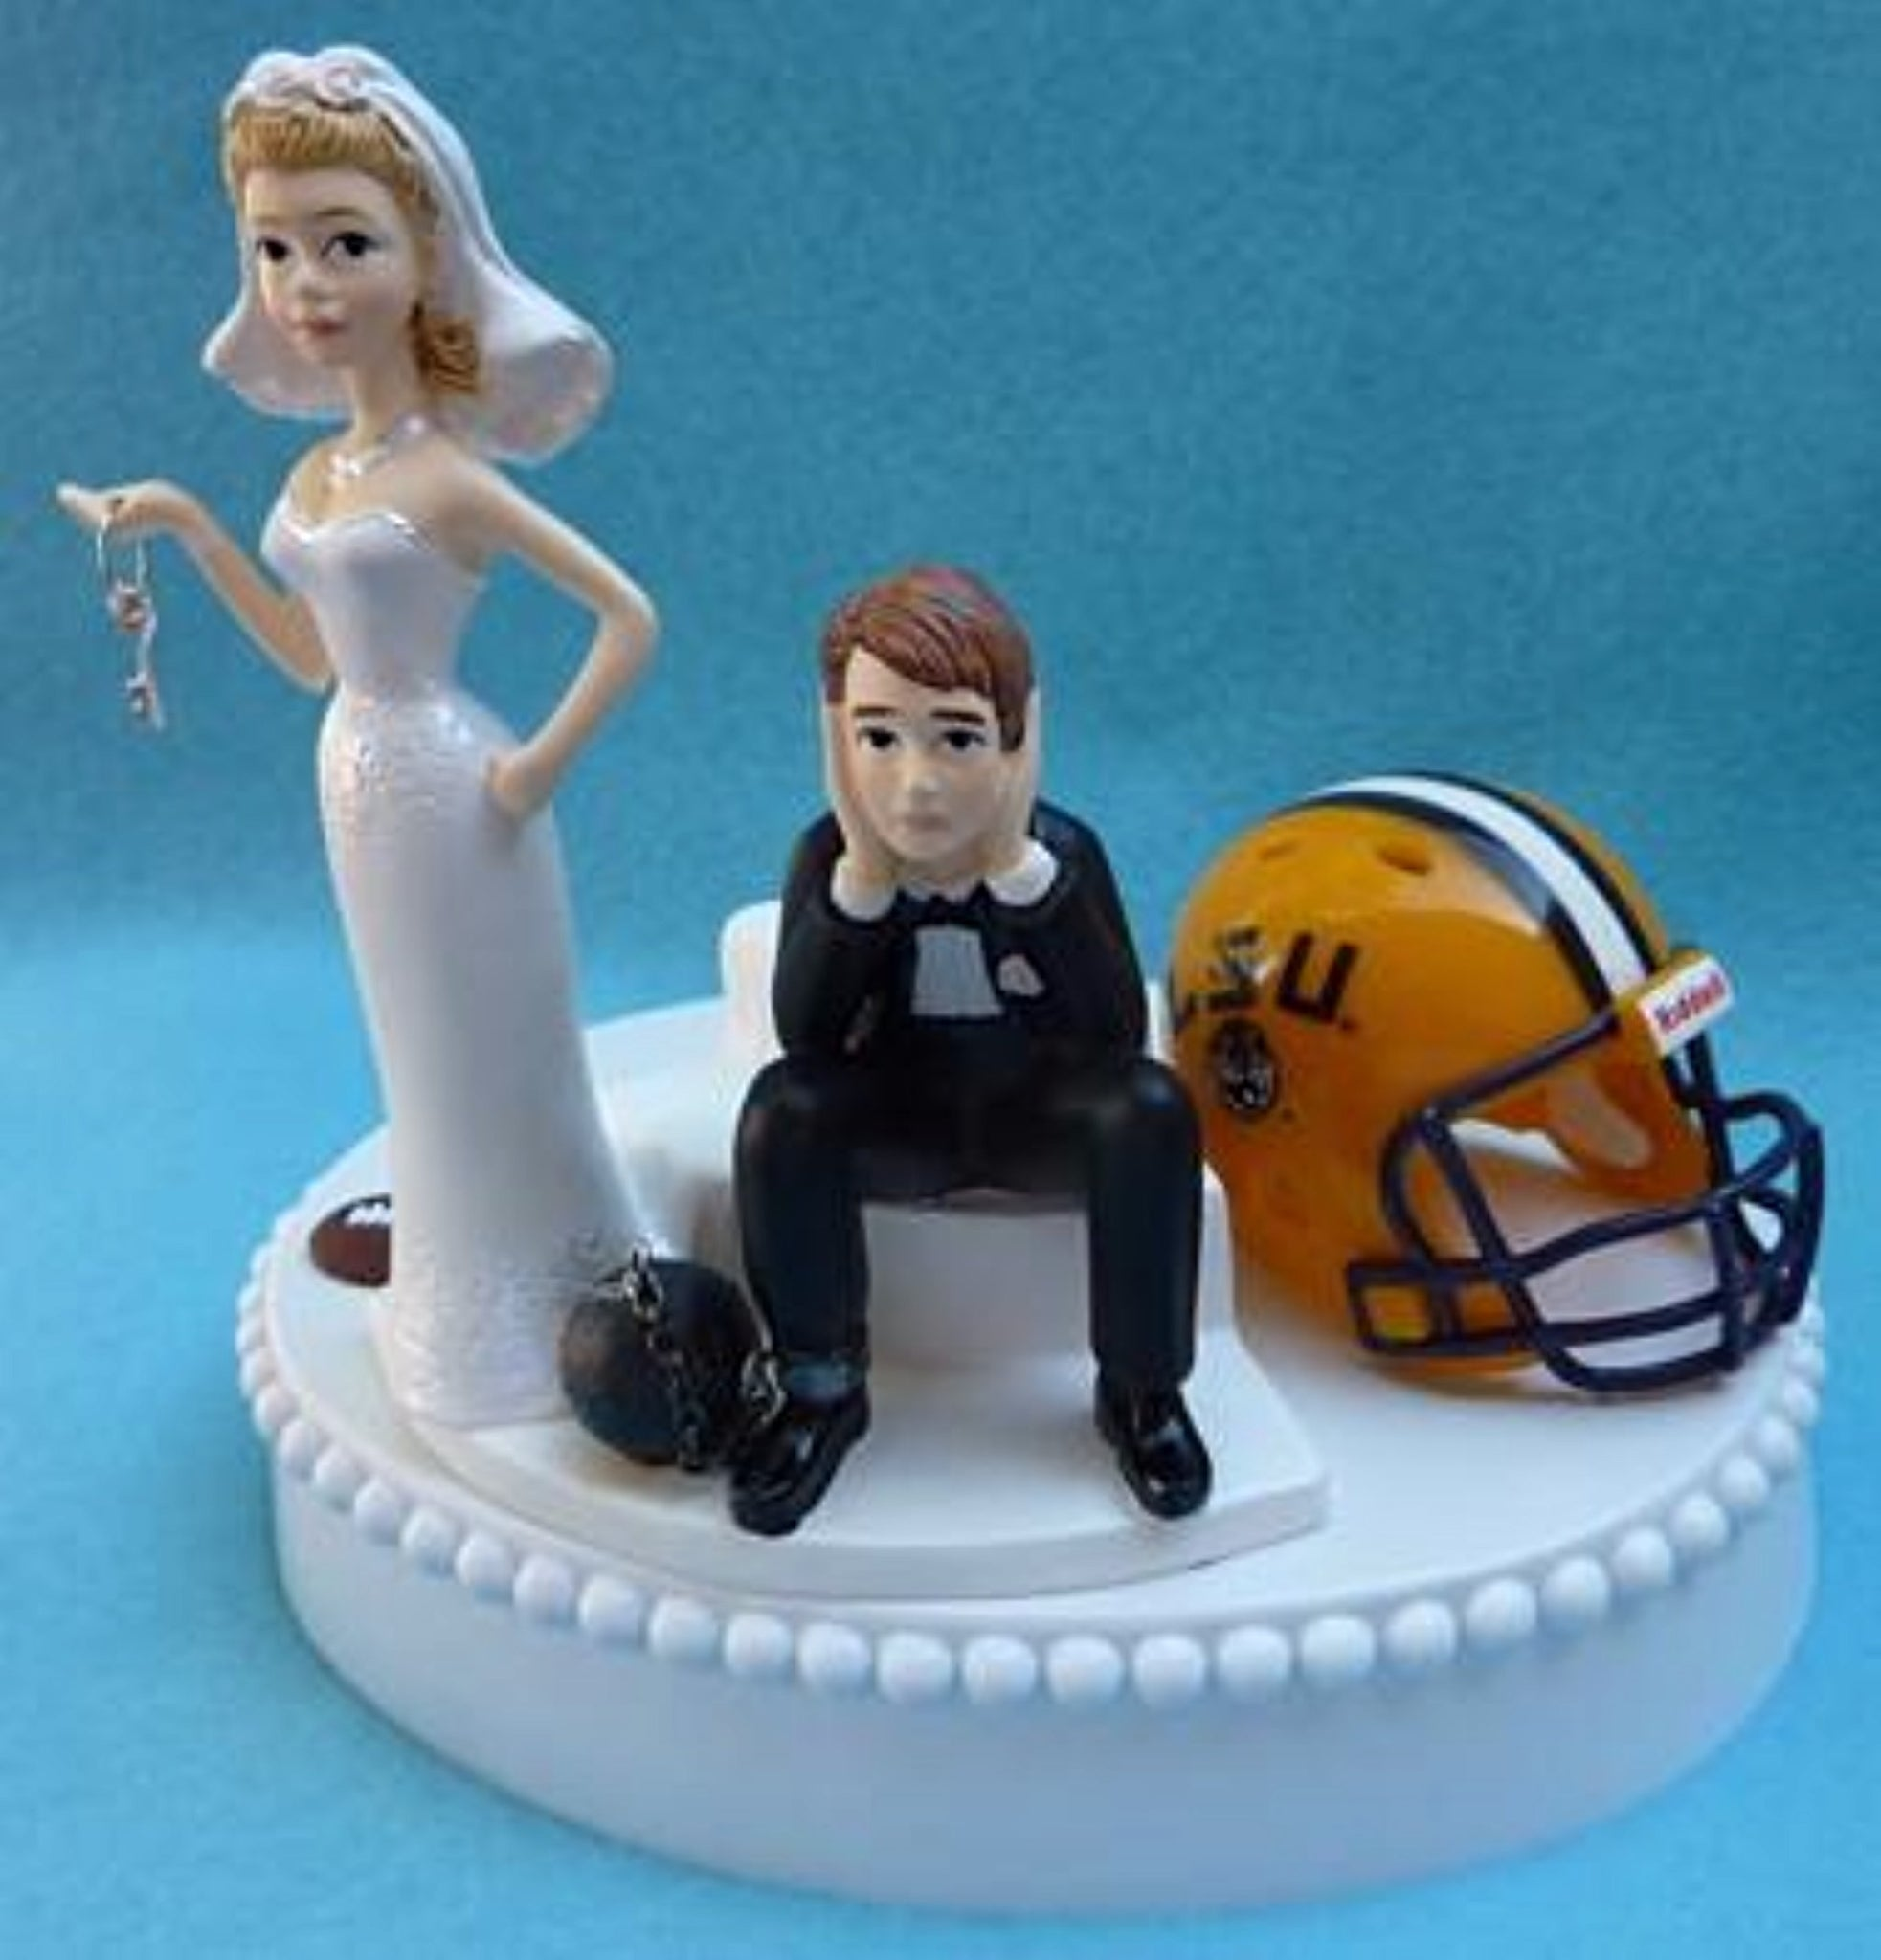 Louisiana St. University wedding cake topper LSU Tigers football funny bride sad groom ball chain key helmet sports humorous Fun Wedding Things